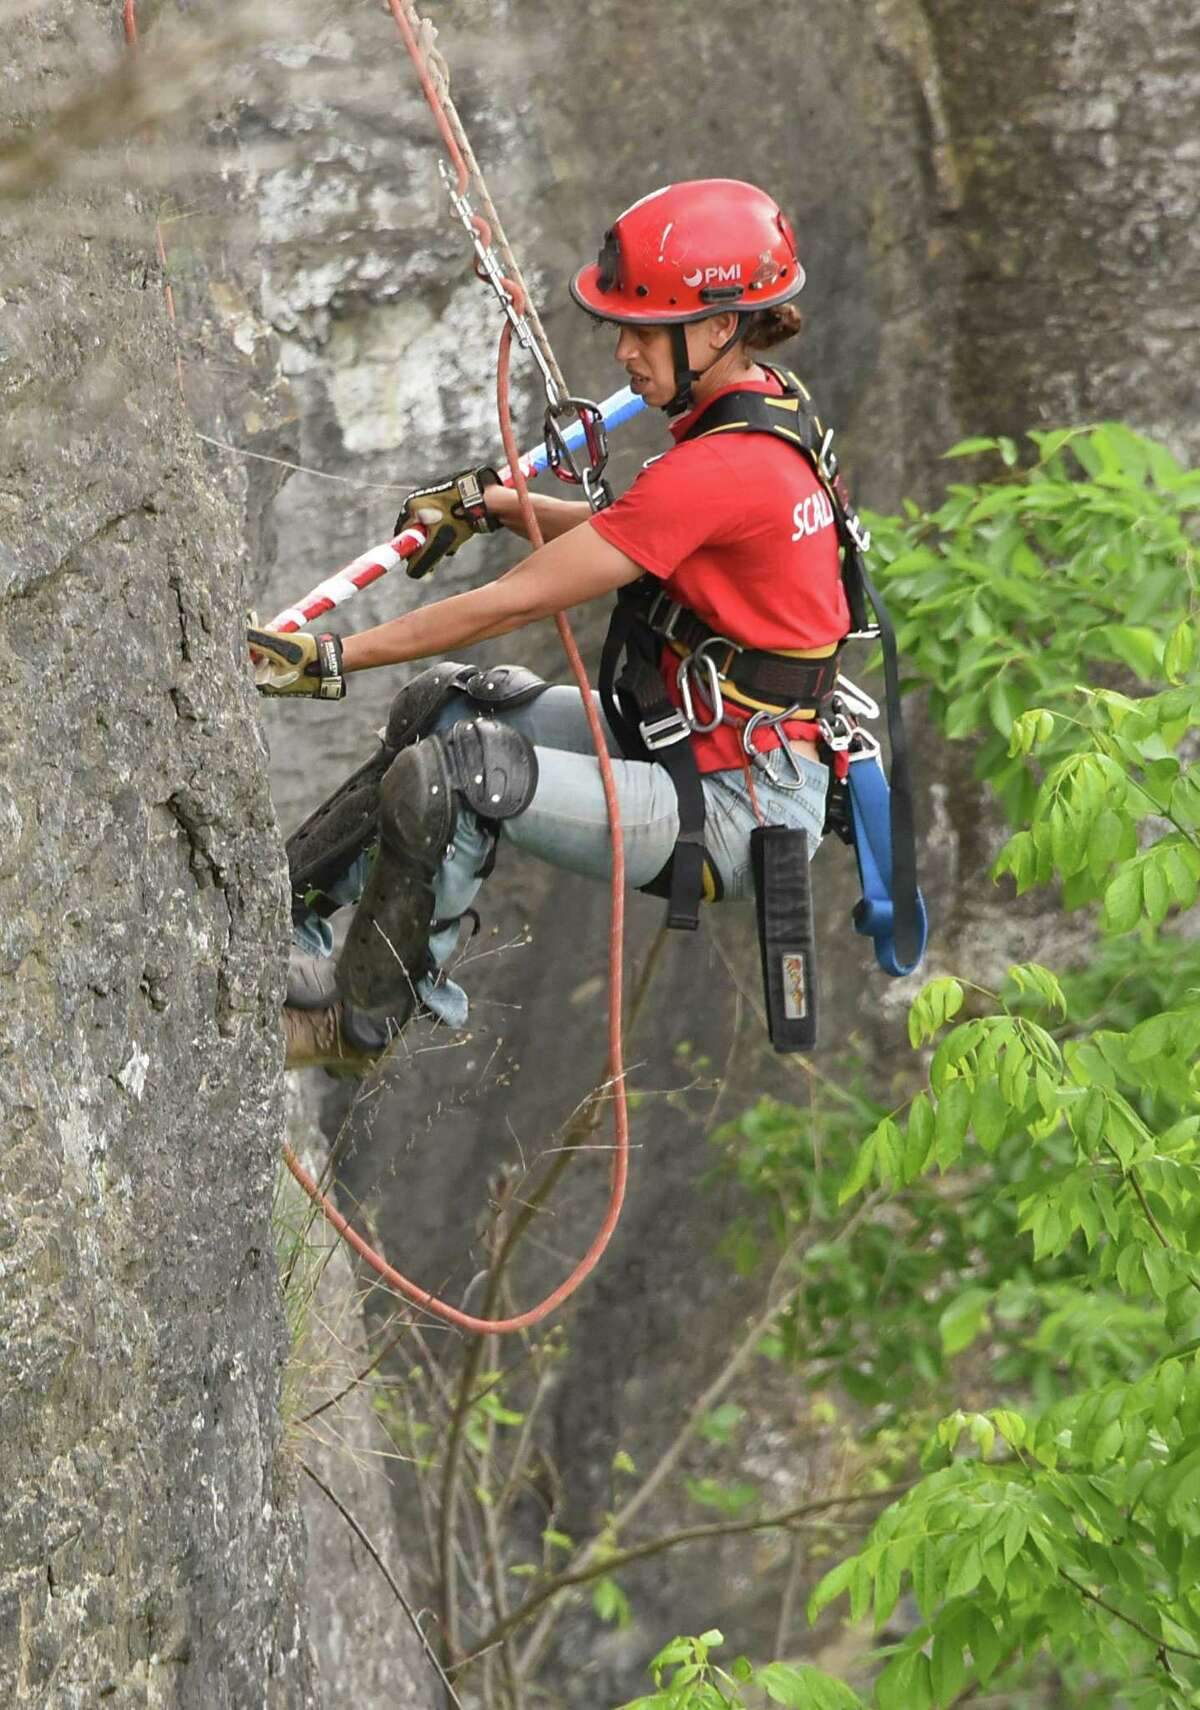 A member of New York State Parks Recreation & Historic Preservation scaling team pokes loose rocks as she rappels down the rocky cliff above Indian Ladder Trail at John Boyd Thacher State Park on Thursday, May 31, 2018 in Voorheesville, N.Y. The scaling team, out of Ithaca, was poking loose rocks to make them fall to prevent future injuries to hikers. (Lori Van Buren/Times Union)